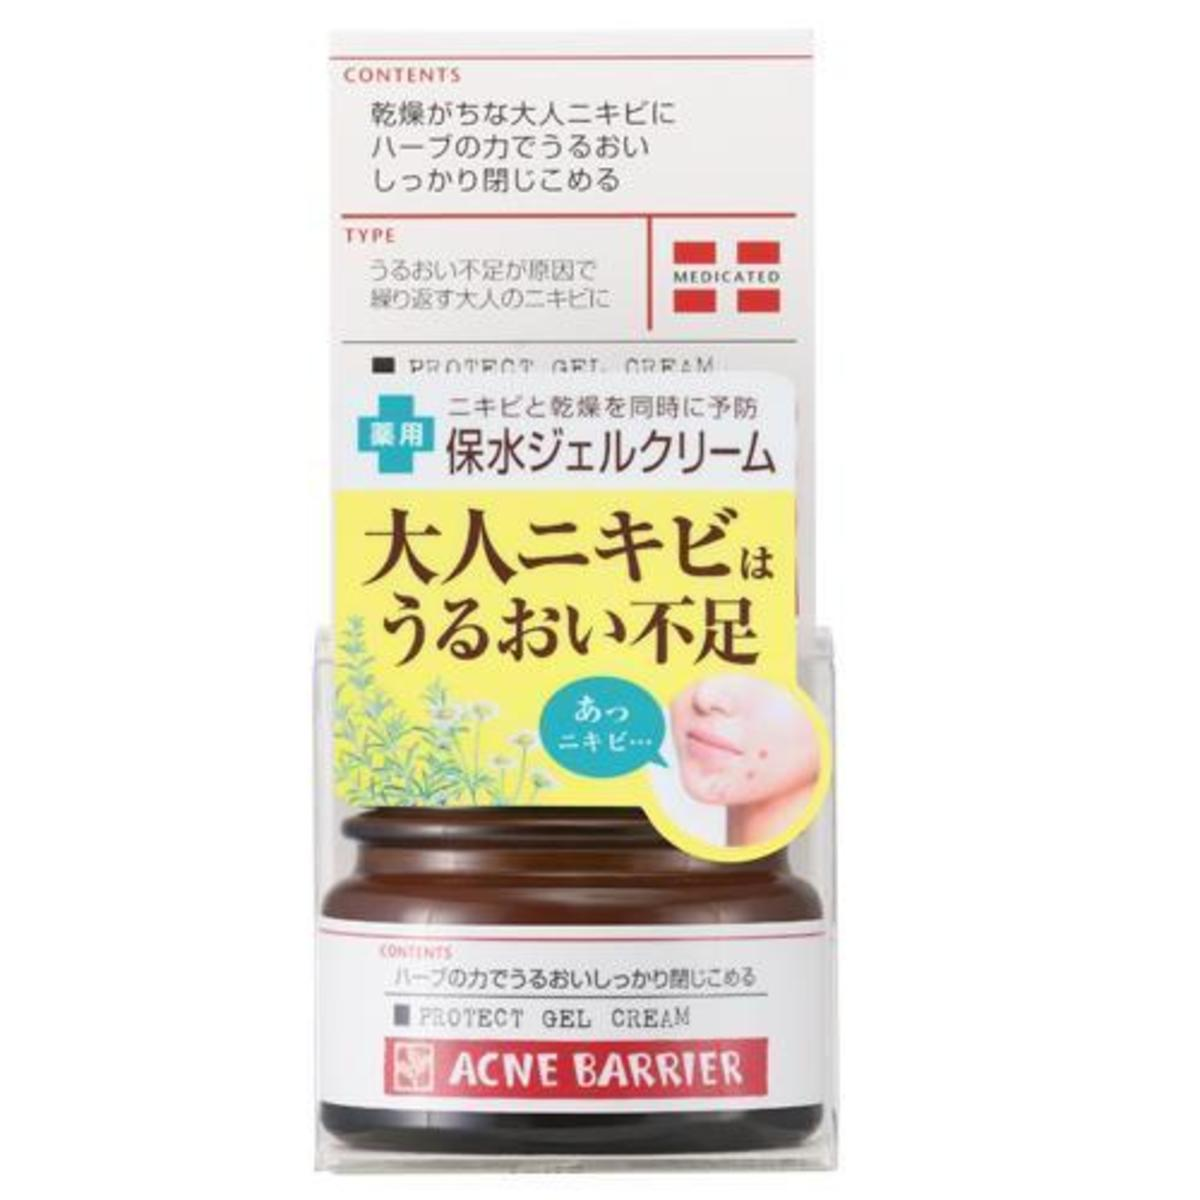 Acne Barrier Protect Gel Cream 33g